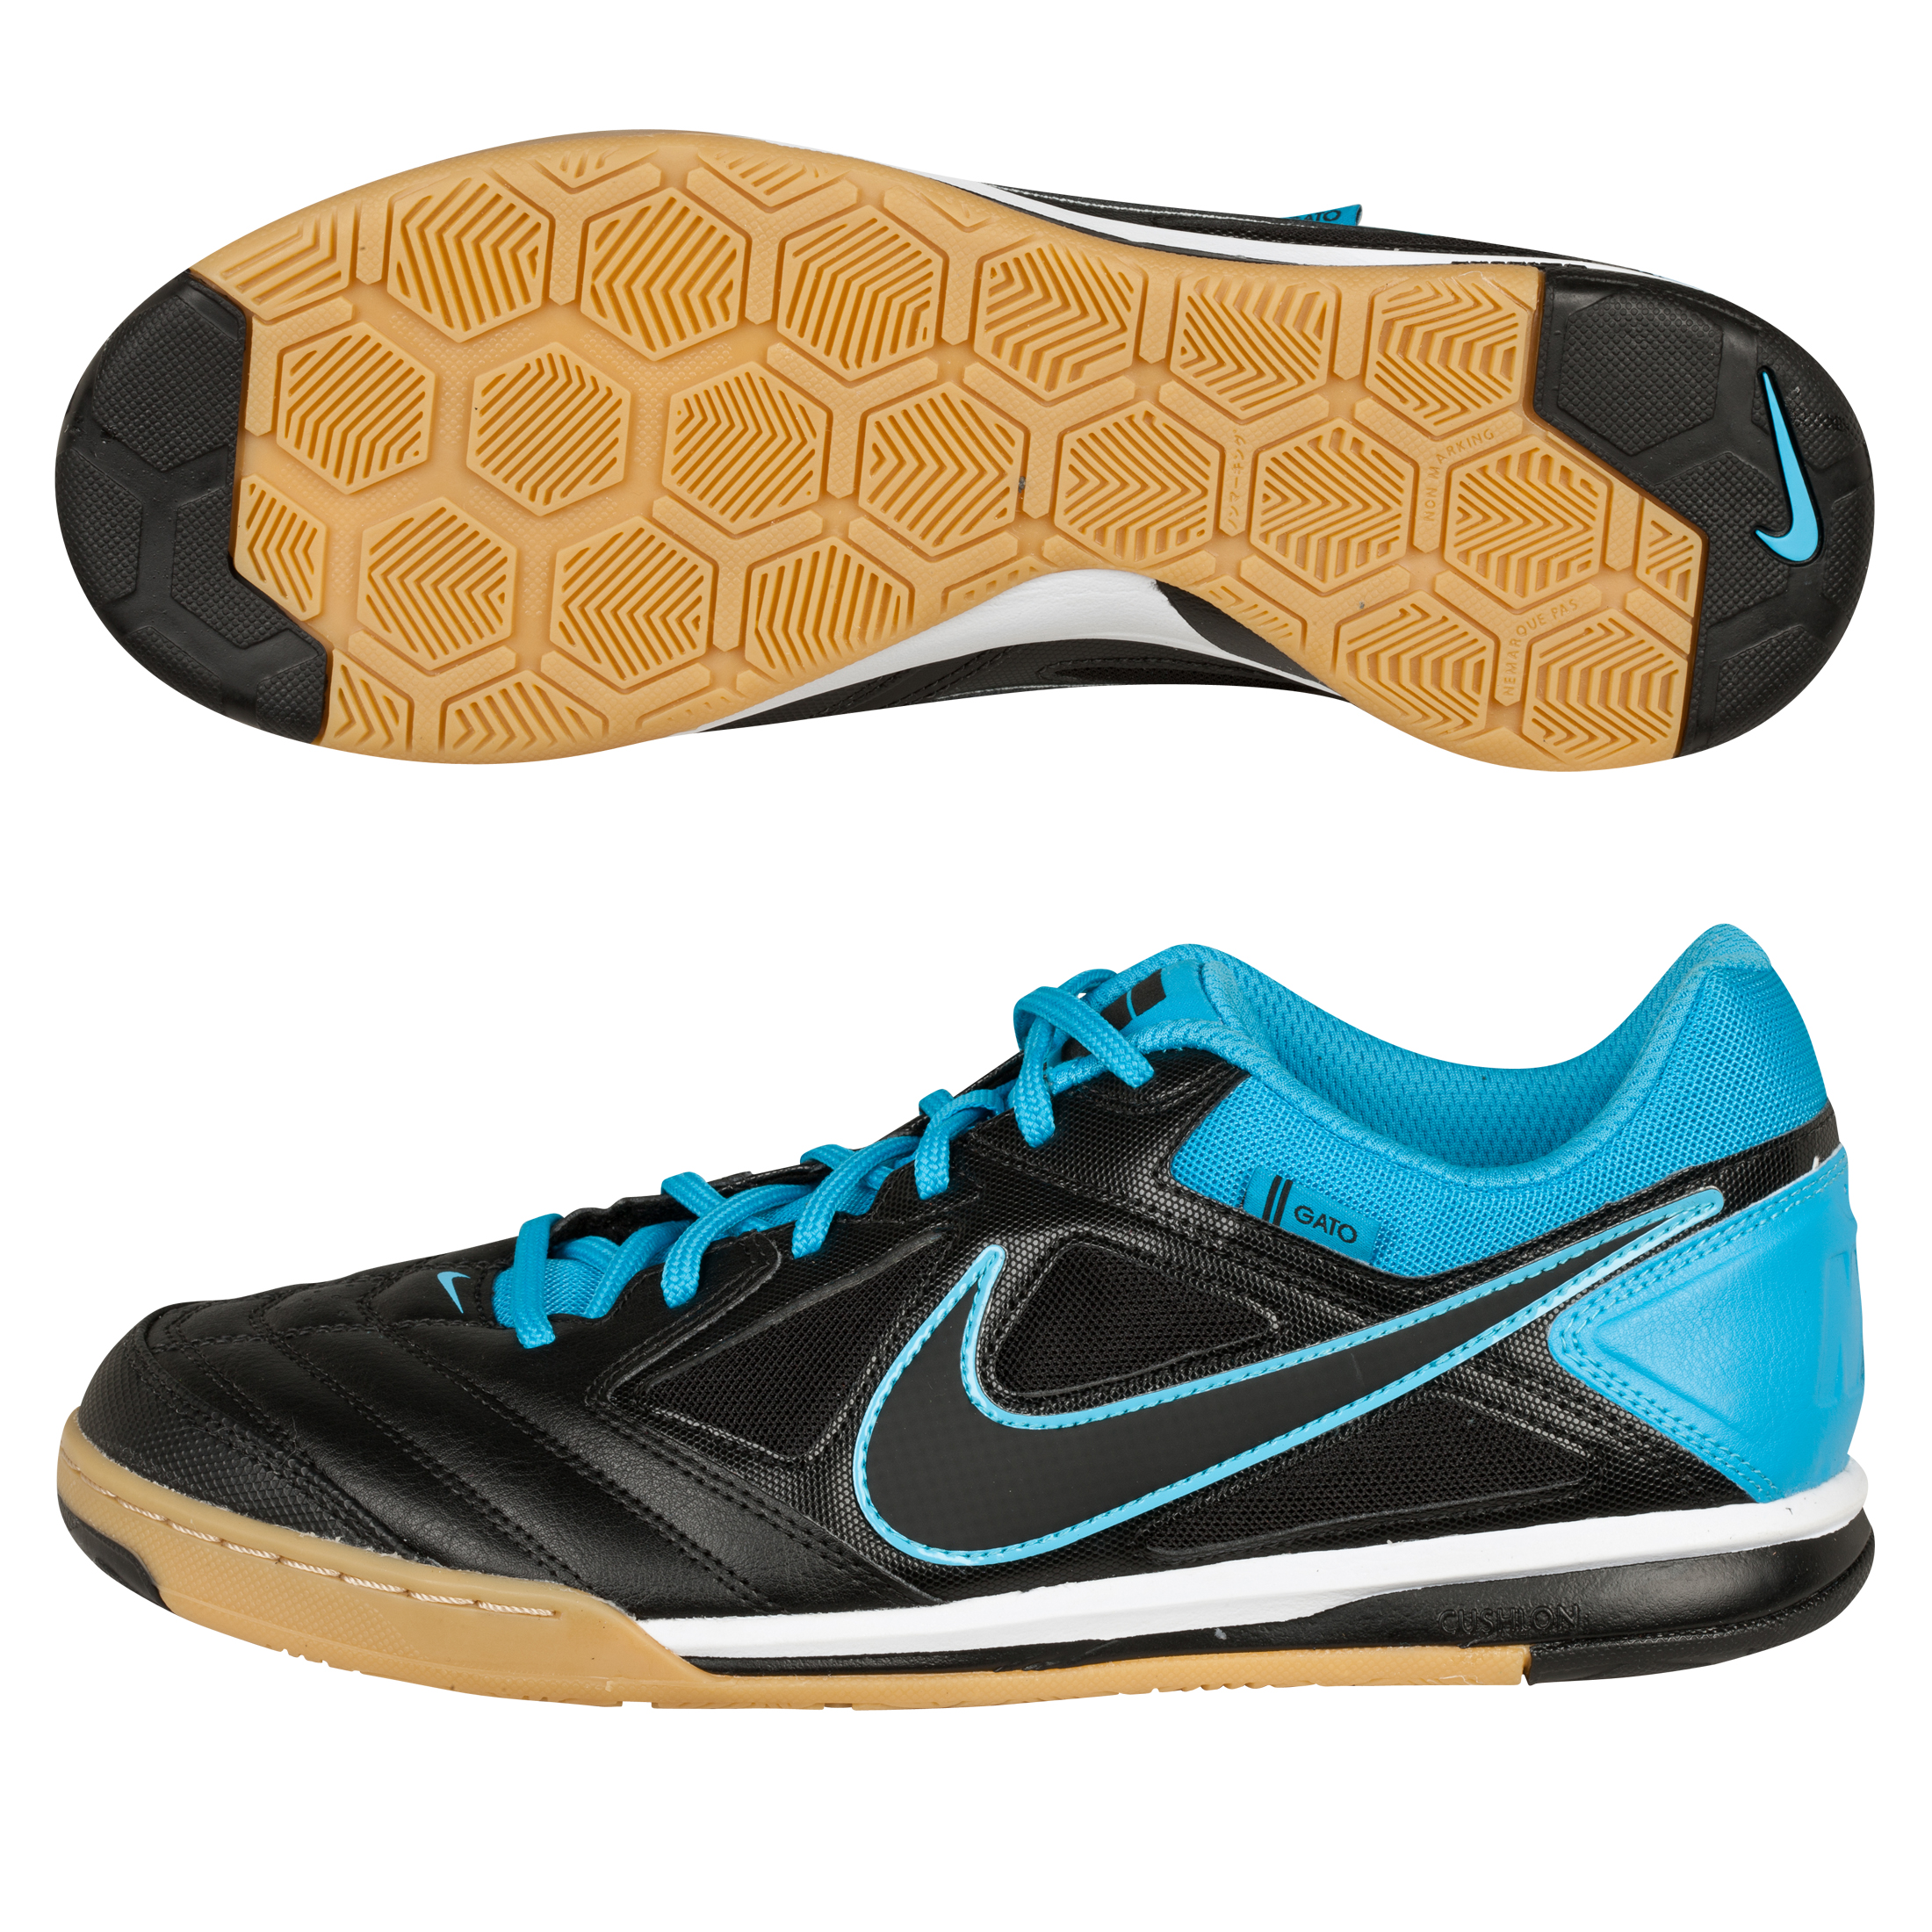 Nike5 Gato Trainers - Black/Black/Current Blue